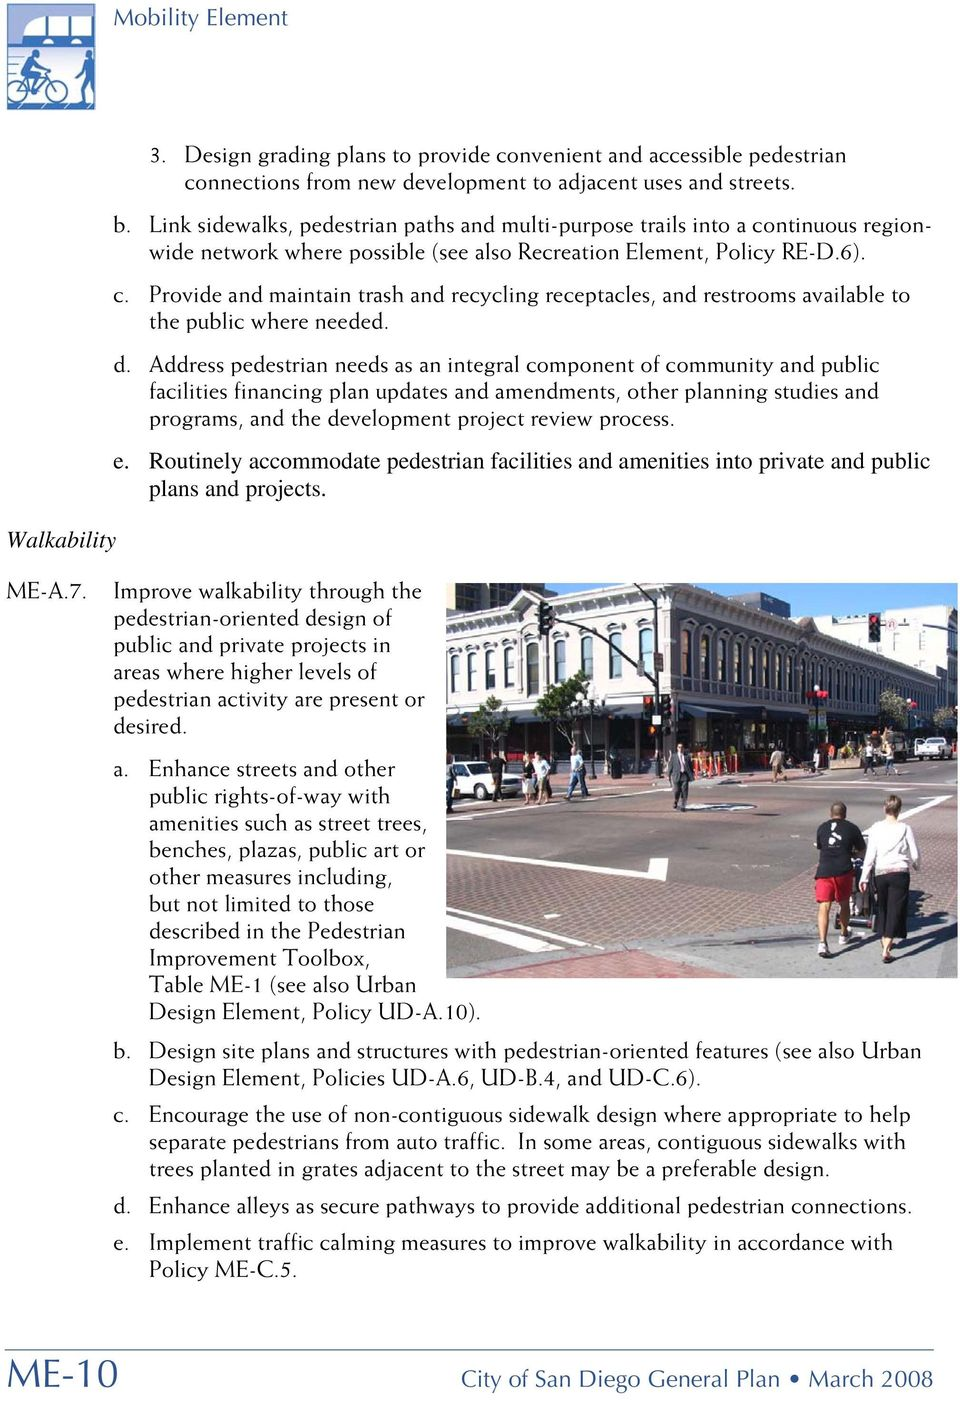 d. Address pedestrian needs as an integral component of community and public facilities financing plan updates and amendments, other planning studies and programs, and the development project review